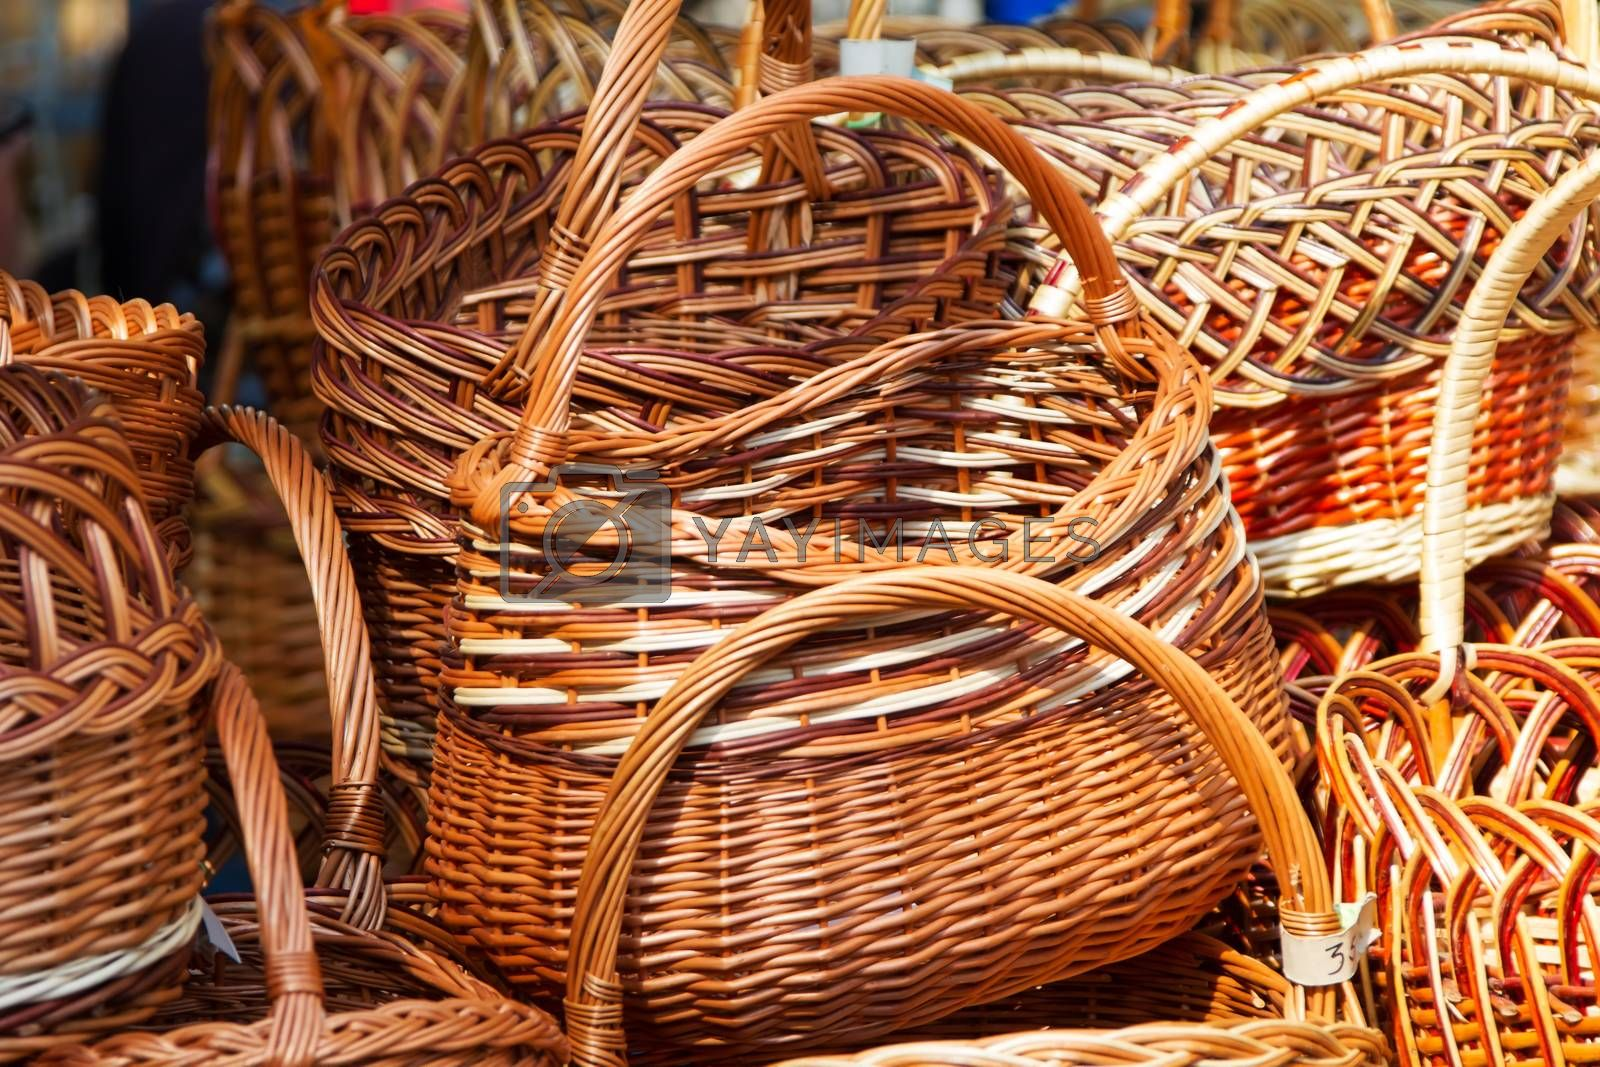 Wicker baskets made of straw